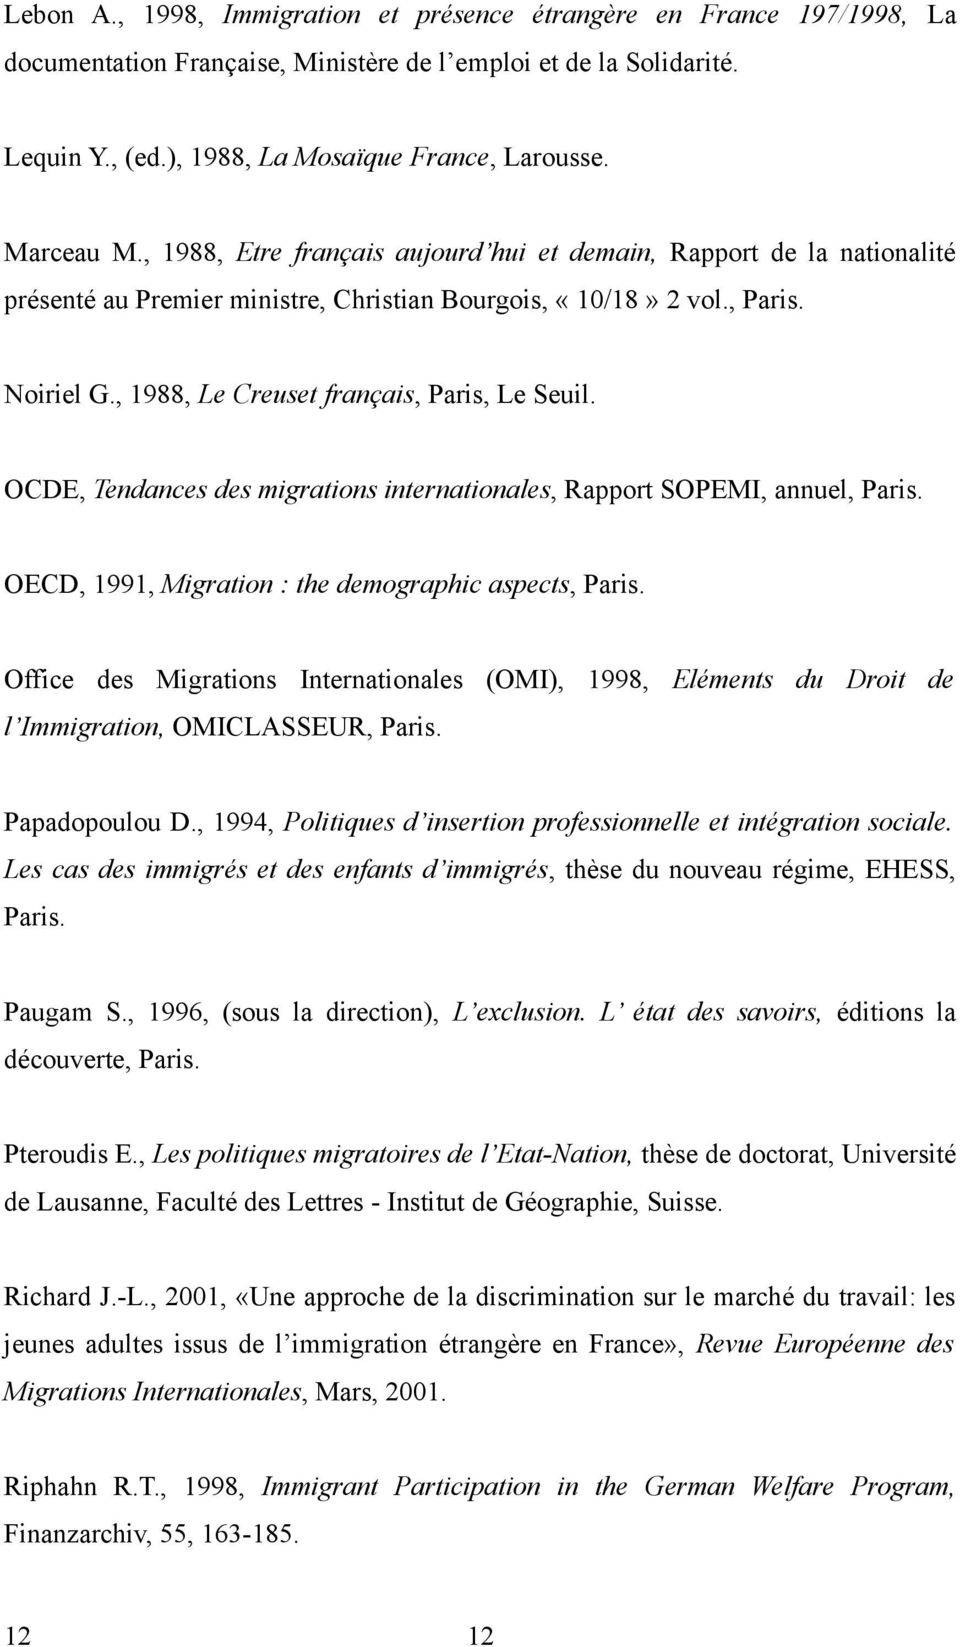 , 1988, Le Creuset français, Paris, Le Seuil. OCDE, Tendances des migrations internationales, Rapport SOPEMI, annuel, Paris. OECD, 1991, Migration : the demographic aspects, Paris.